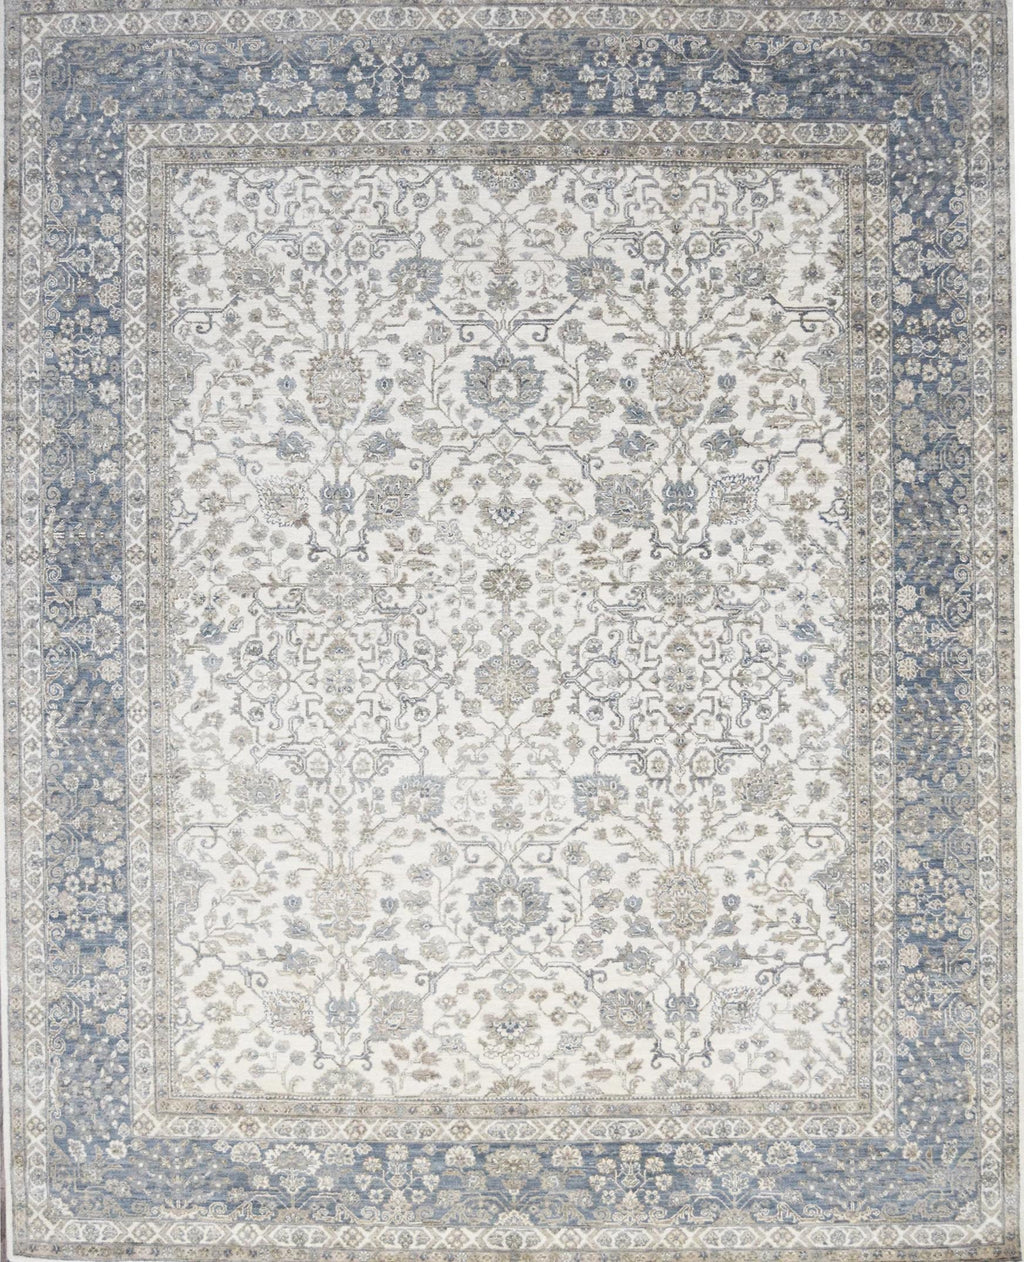 Pearl Isfahan Antique Rug handmade area rug Shop Tapis